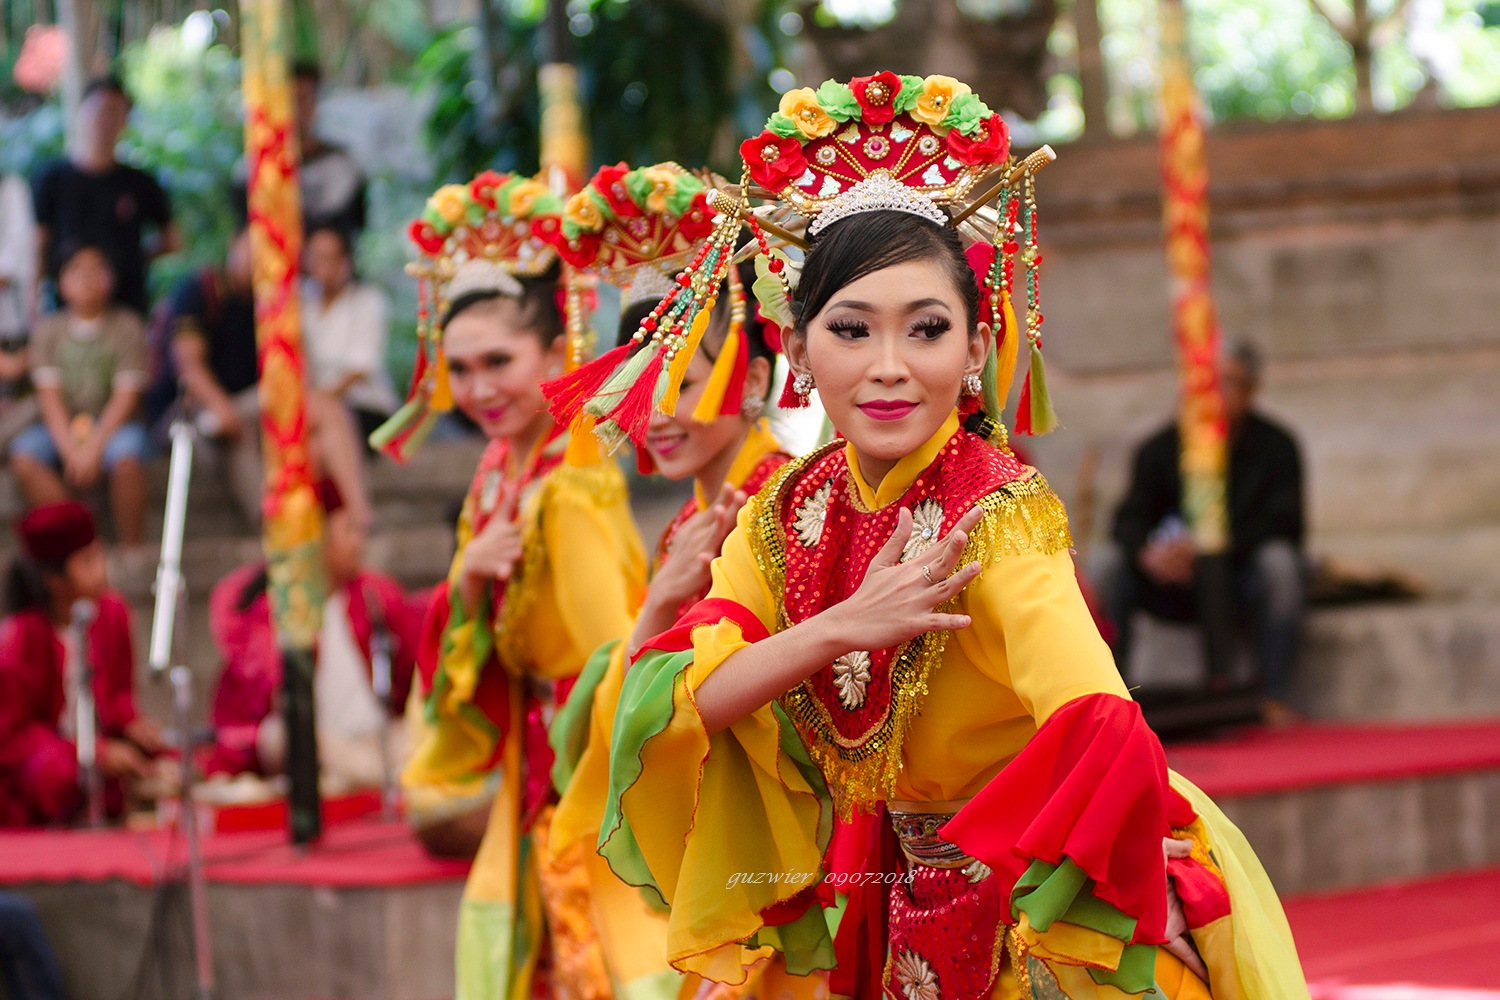 Traditional Dance & Music from Suth Tangerang City by guzwier